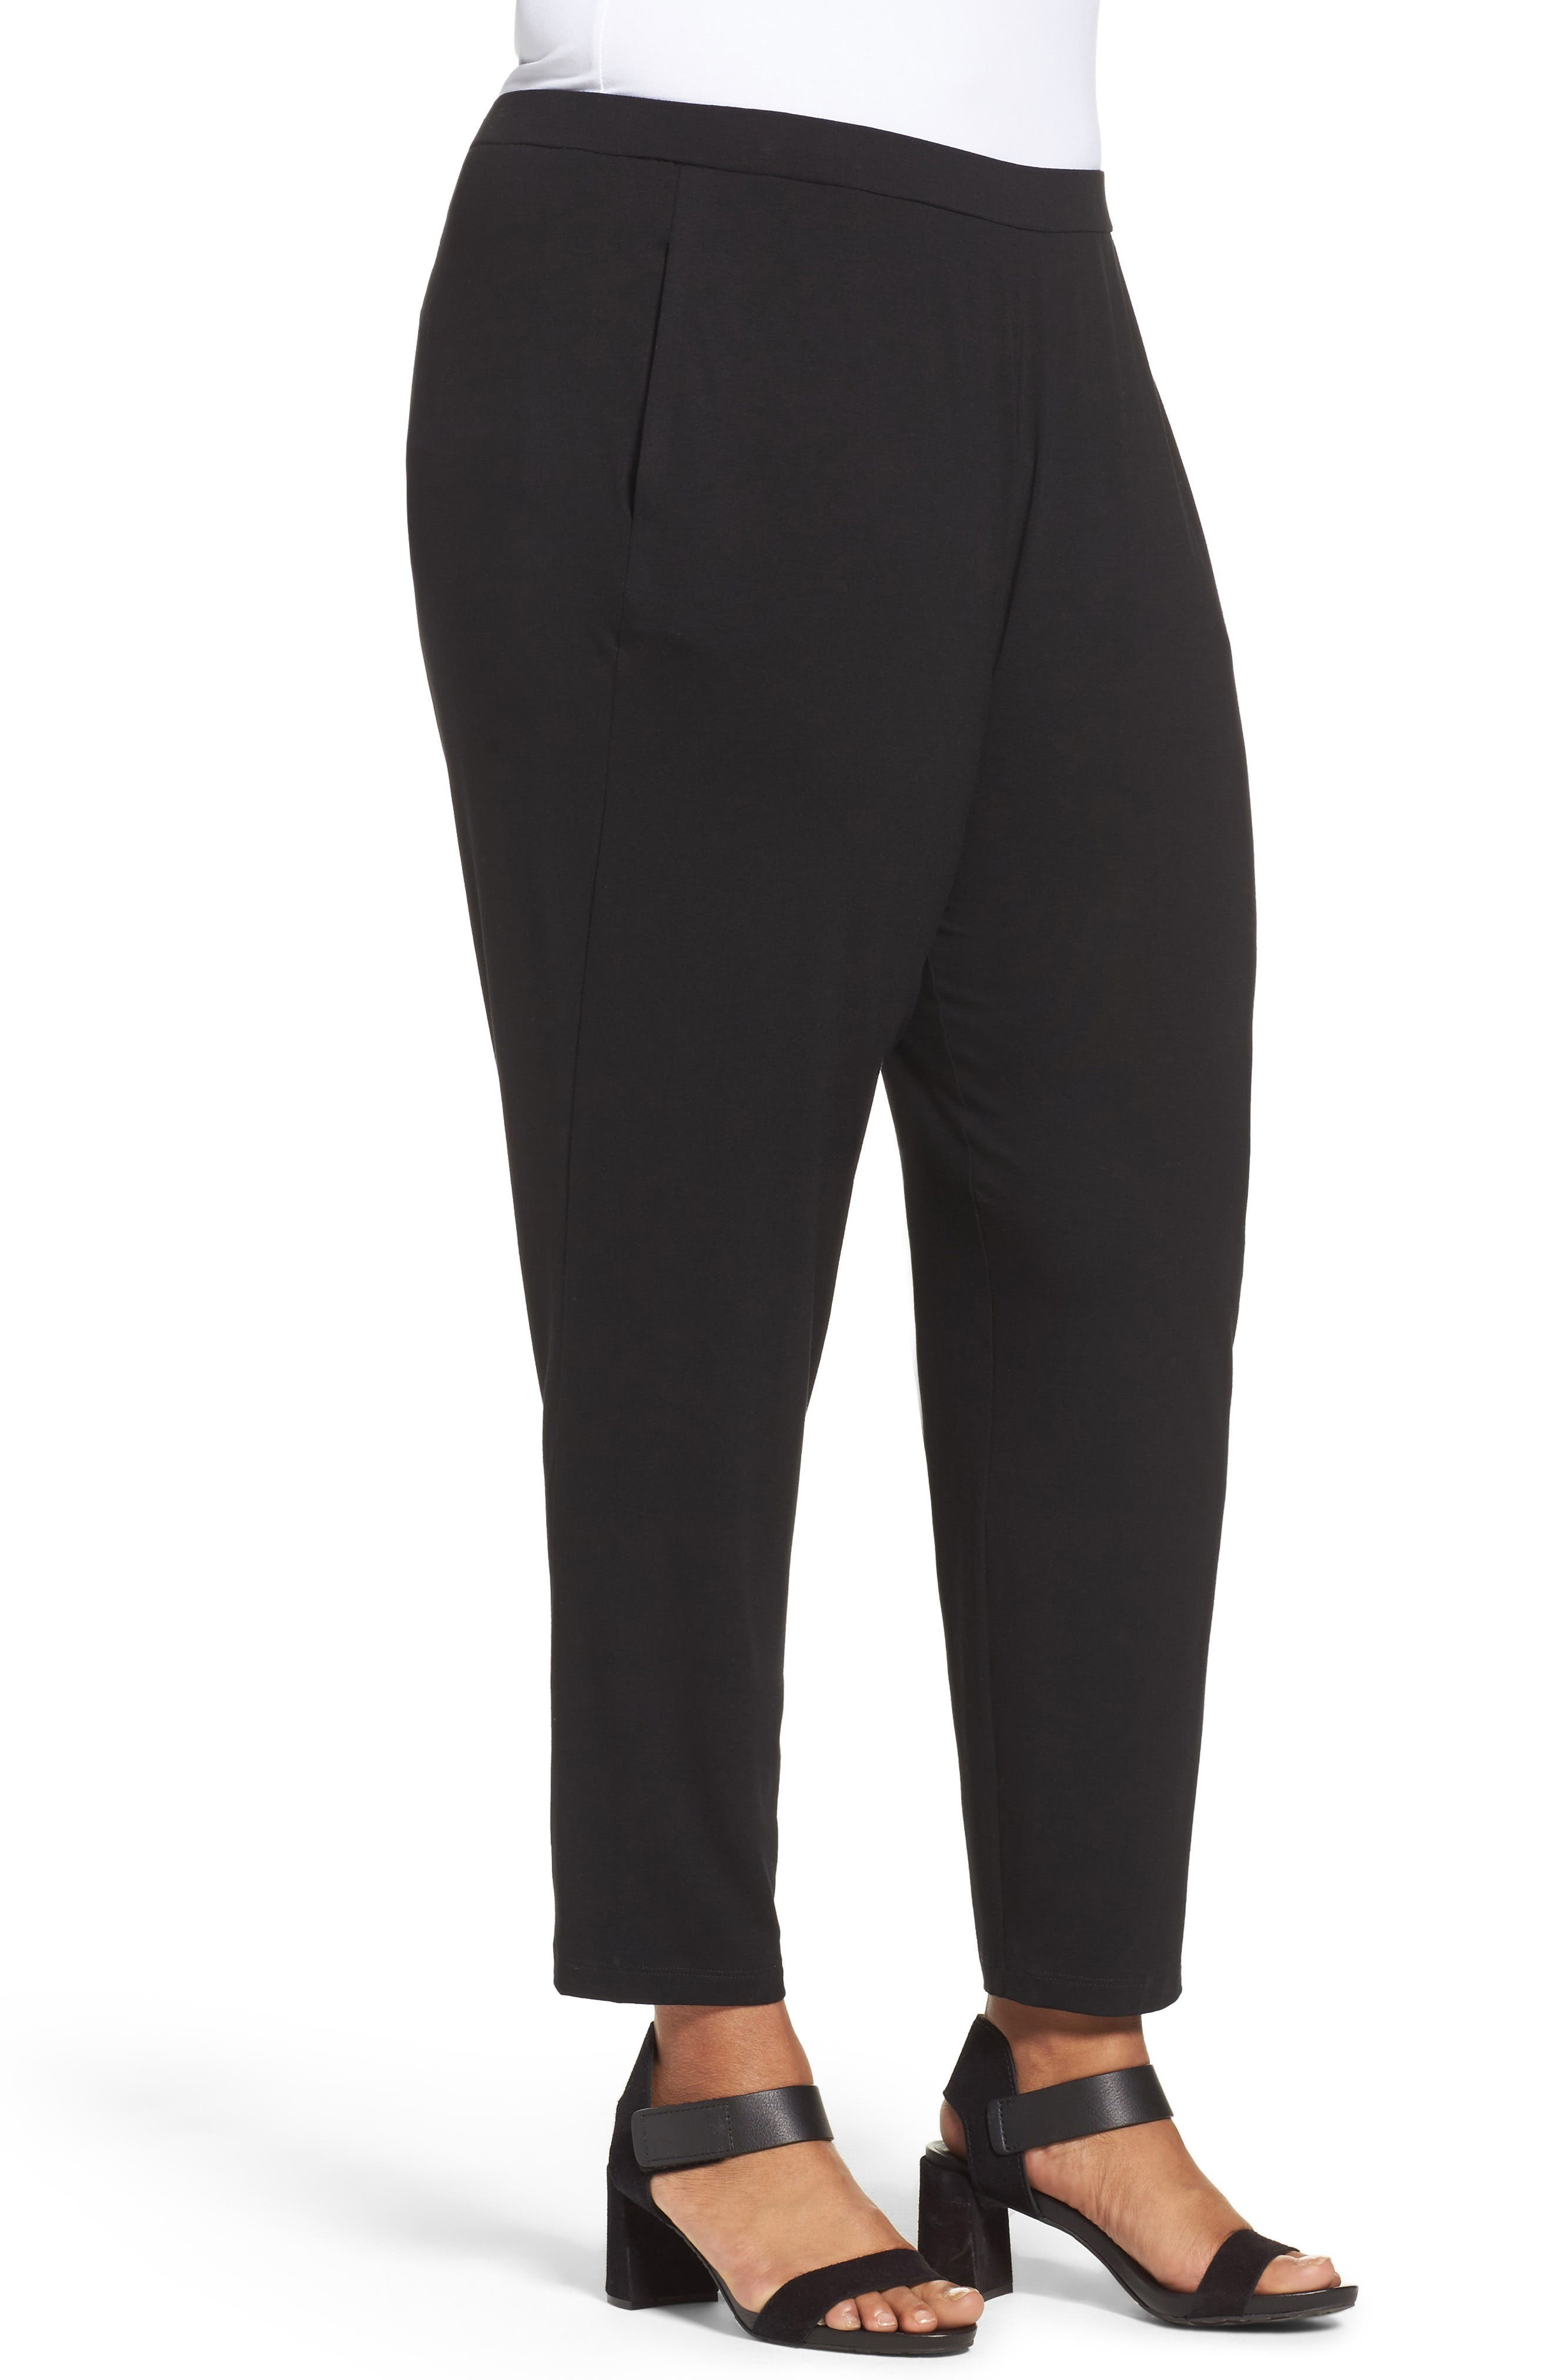 EILEEN FISHER, Crop Stretch Knit Pants, Alternate thumbnail 4, color, BLACK